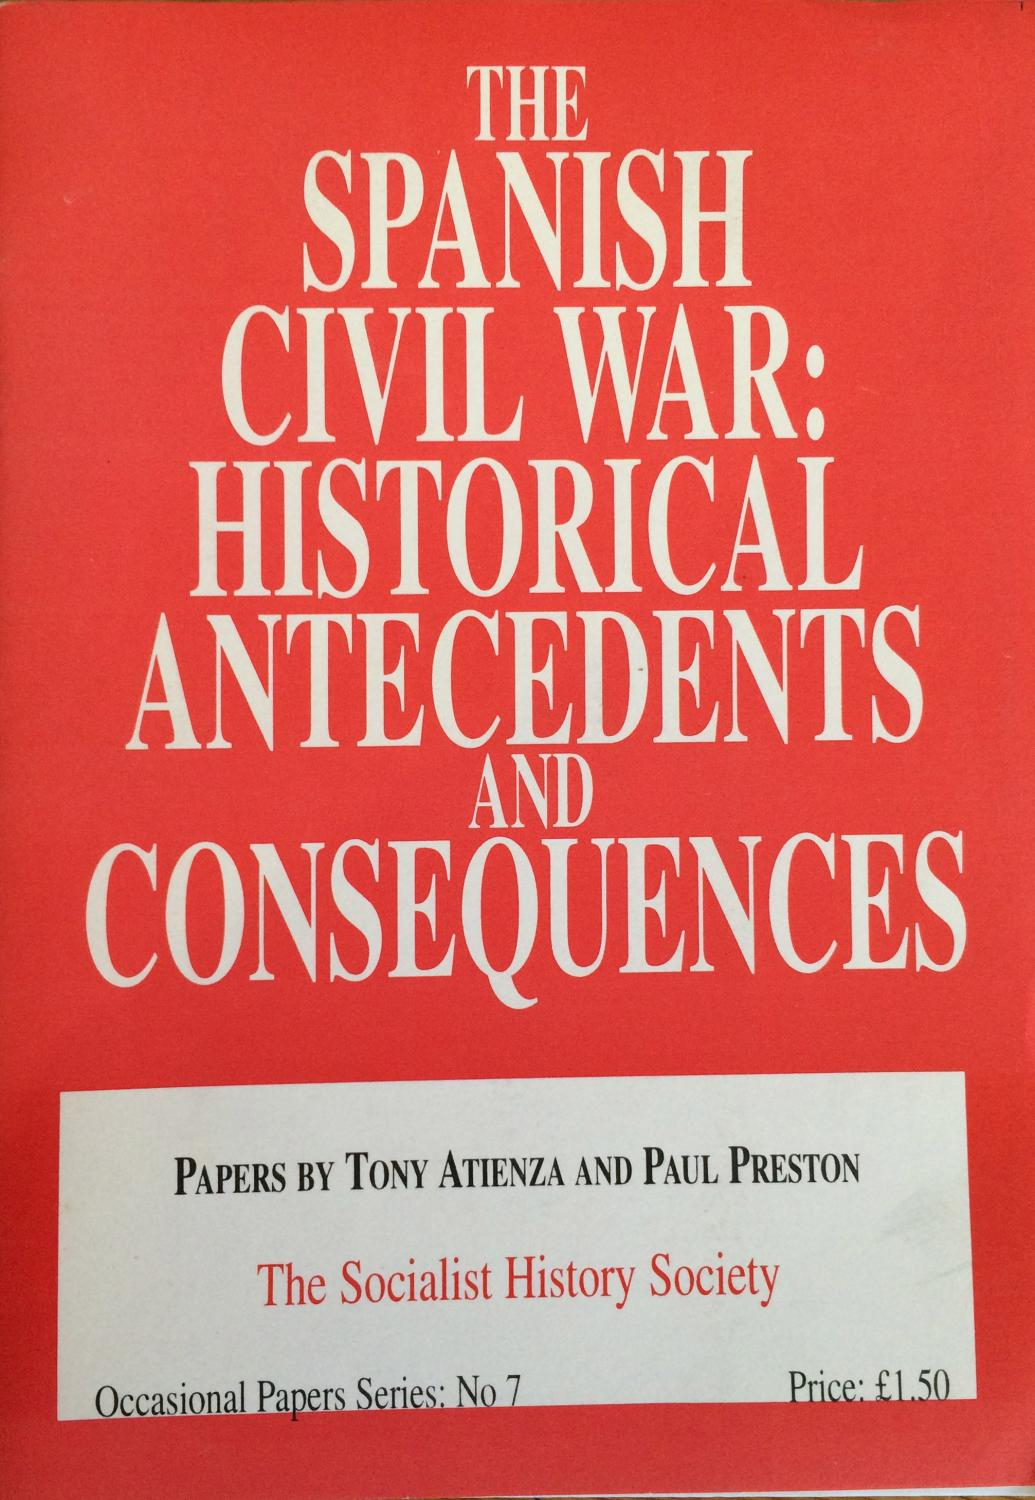 The Spanish Civil War : historical antecedents and consequences : papers - Tony Atienza; Paul Preston; Socialist History Society.